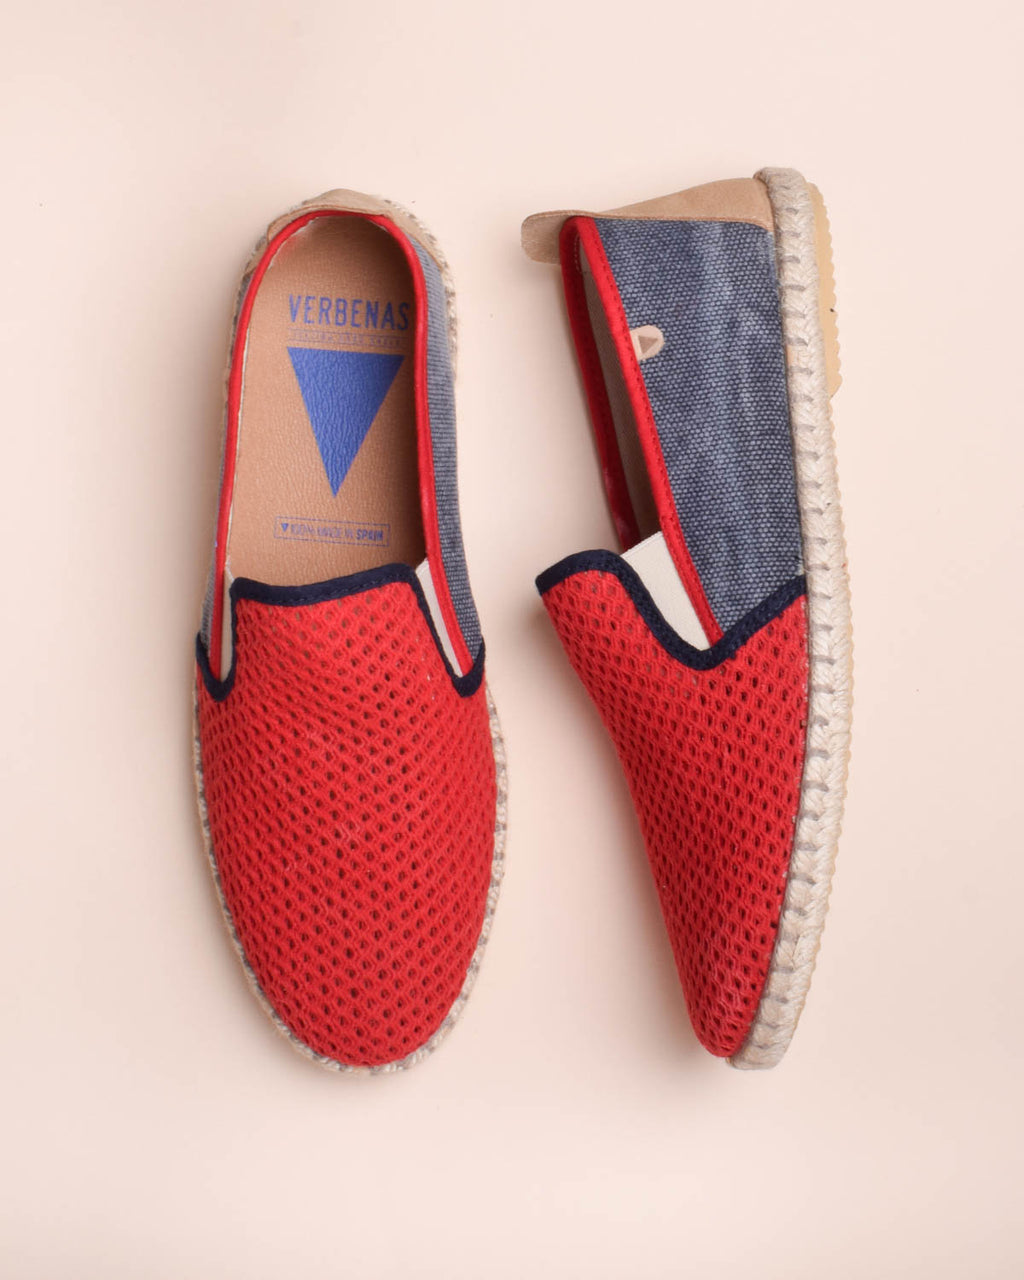 Tito Canvas and Cotton Mesh Jute Wrapped Slip On Shoes - Red / Navy - Verbenas USA